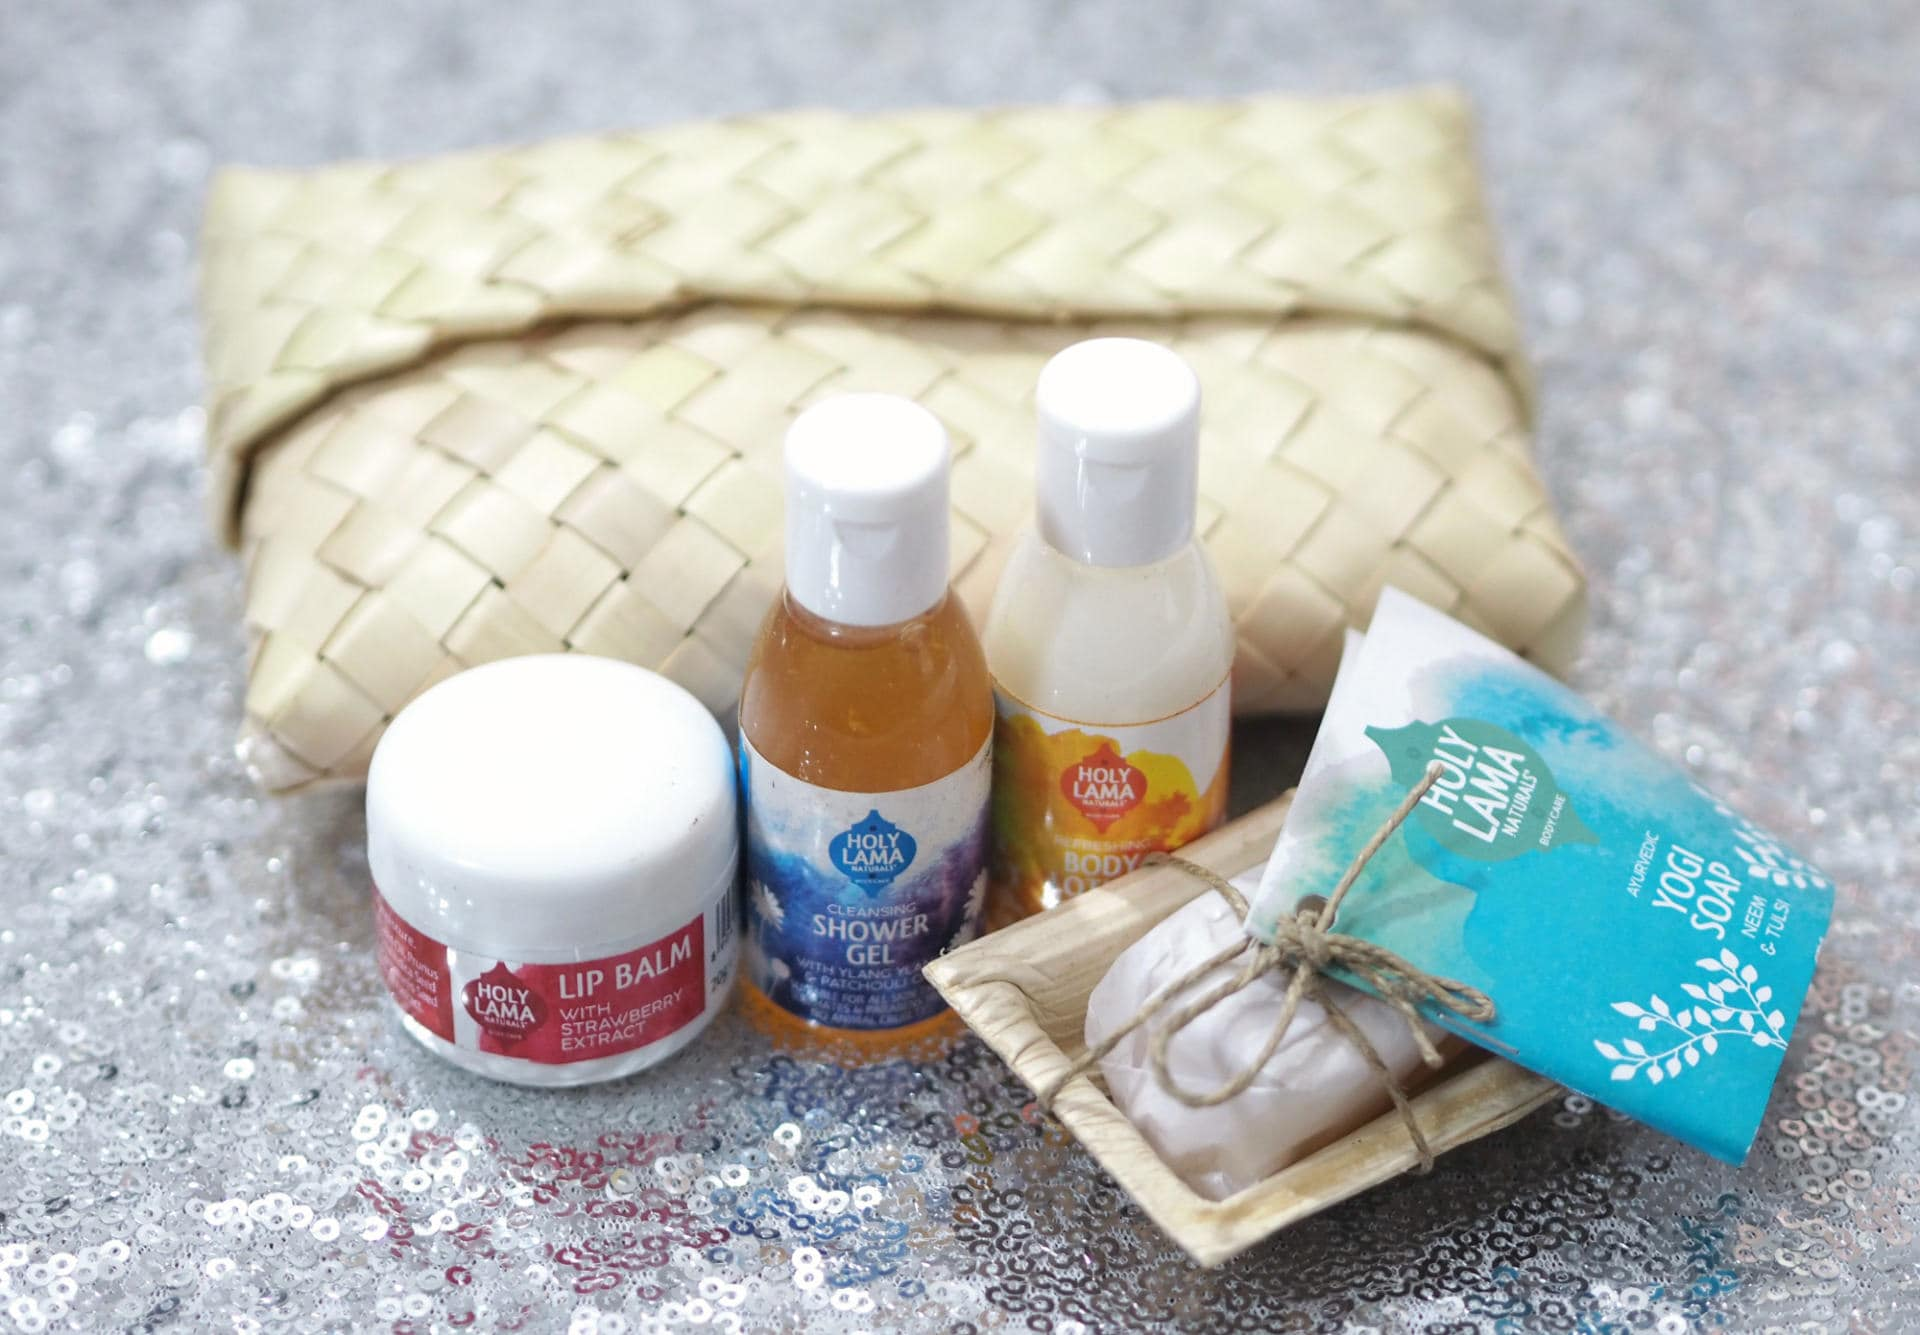 Christmas Stocking Filler Gift Guide 2019 - Holy Lama Naturals Body Boon Gift Set